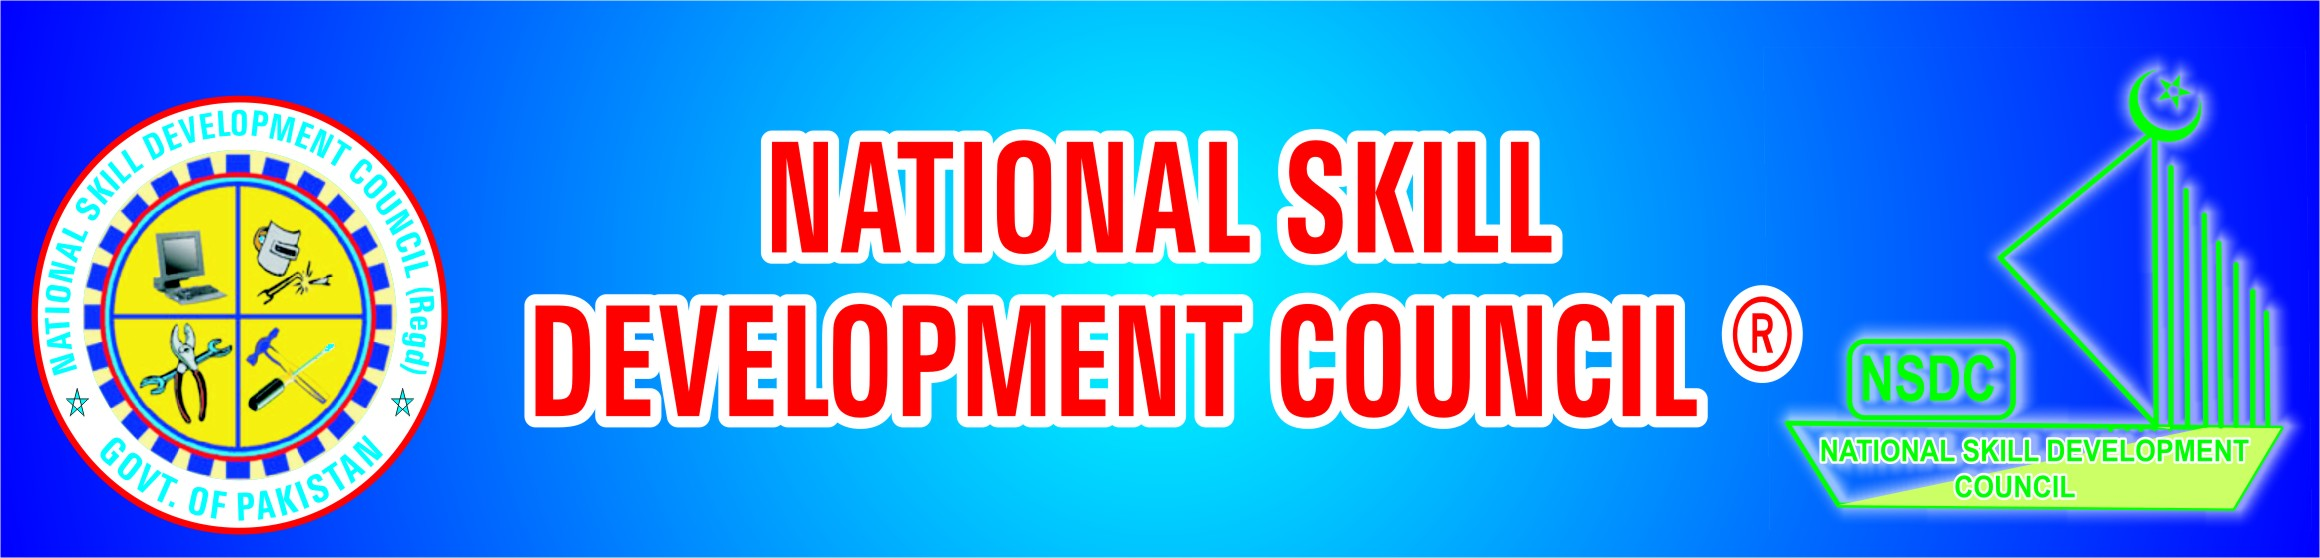 National Skill Development Council